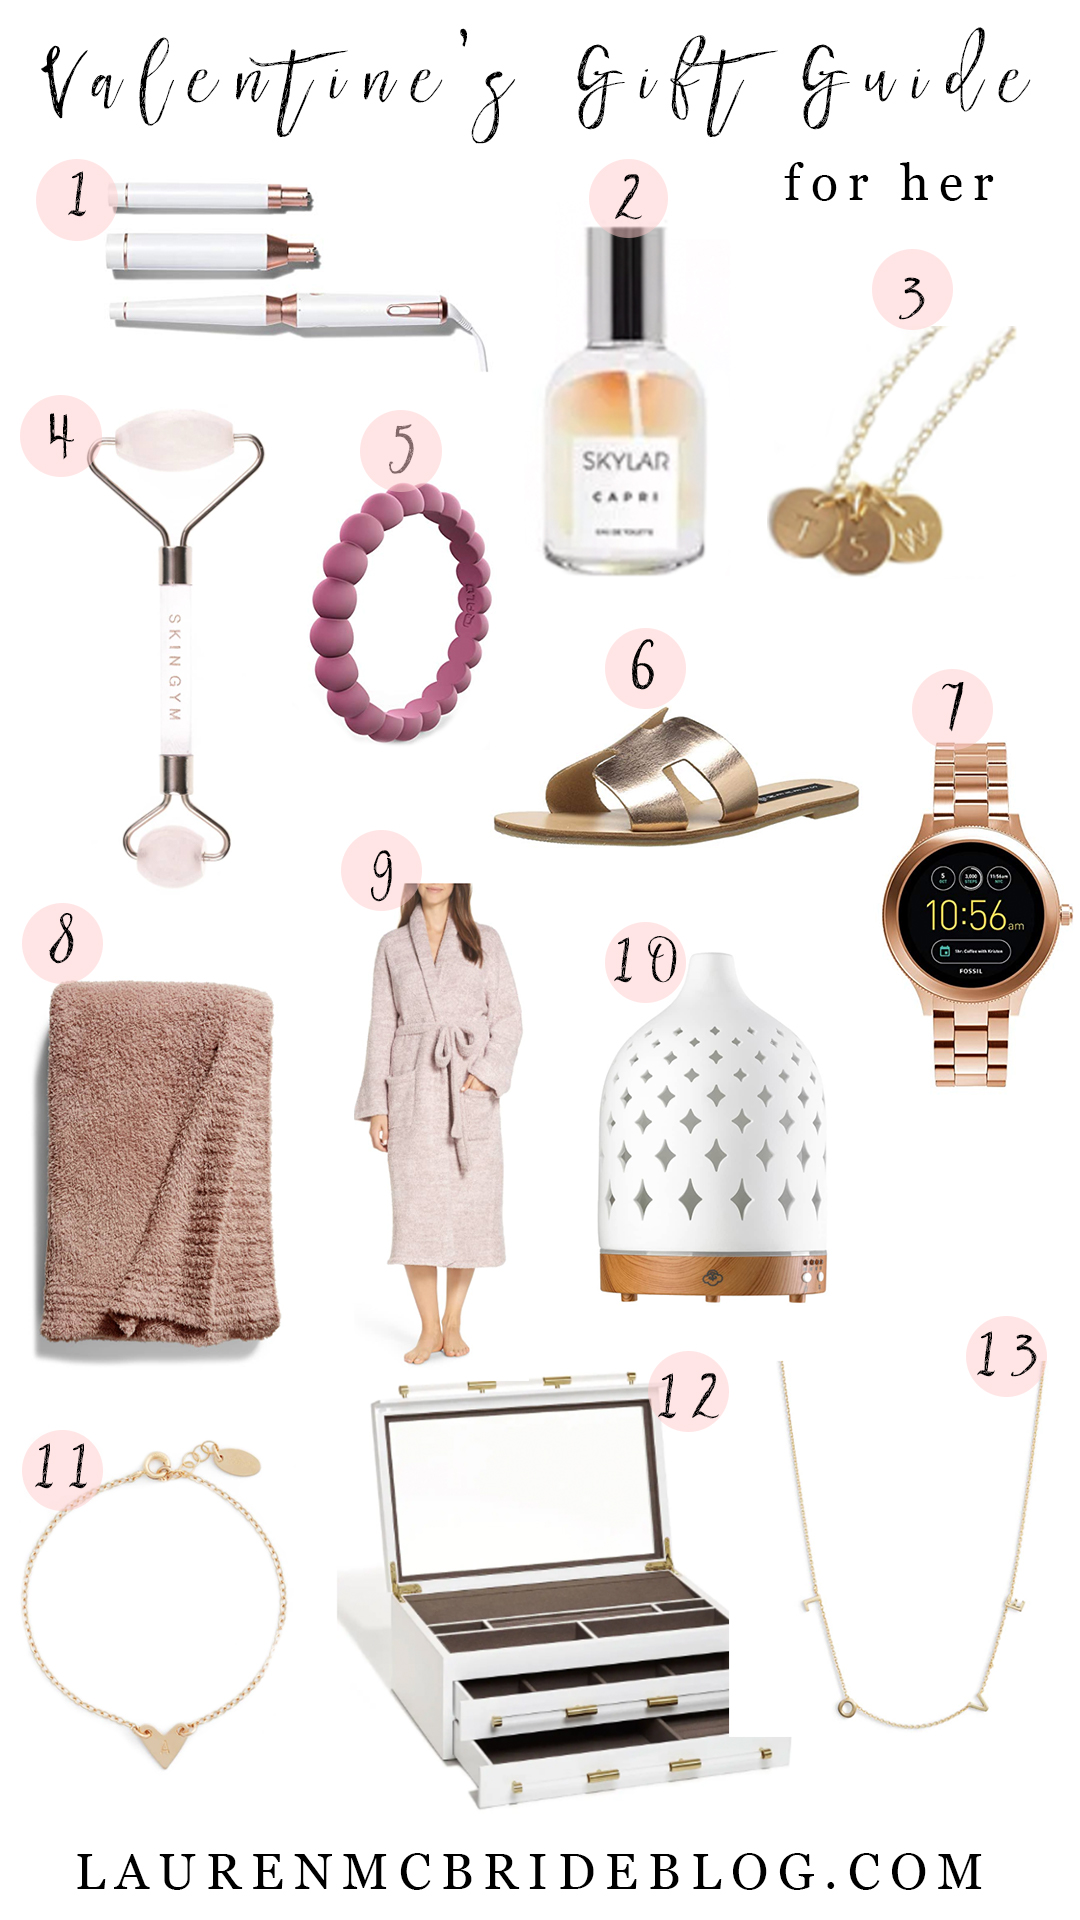 Connecticut life and style blogger Lauren McBride shares a Valentine's Day gift guide for her including a variety of items and price points.